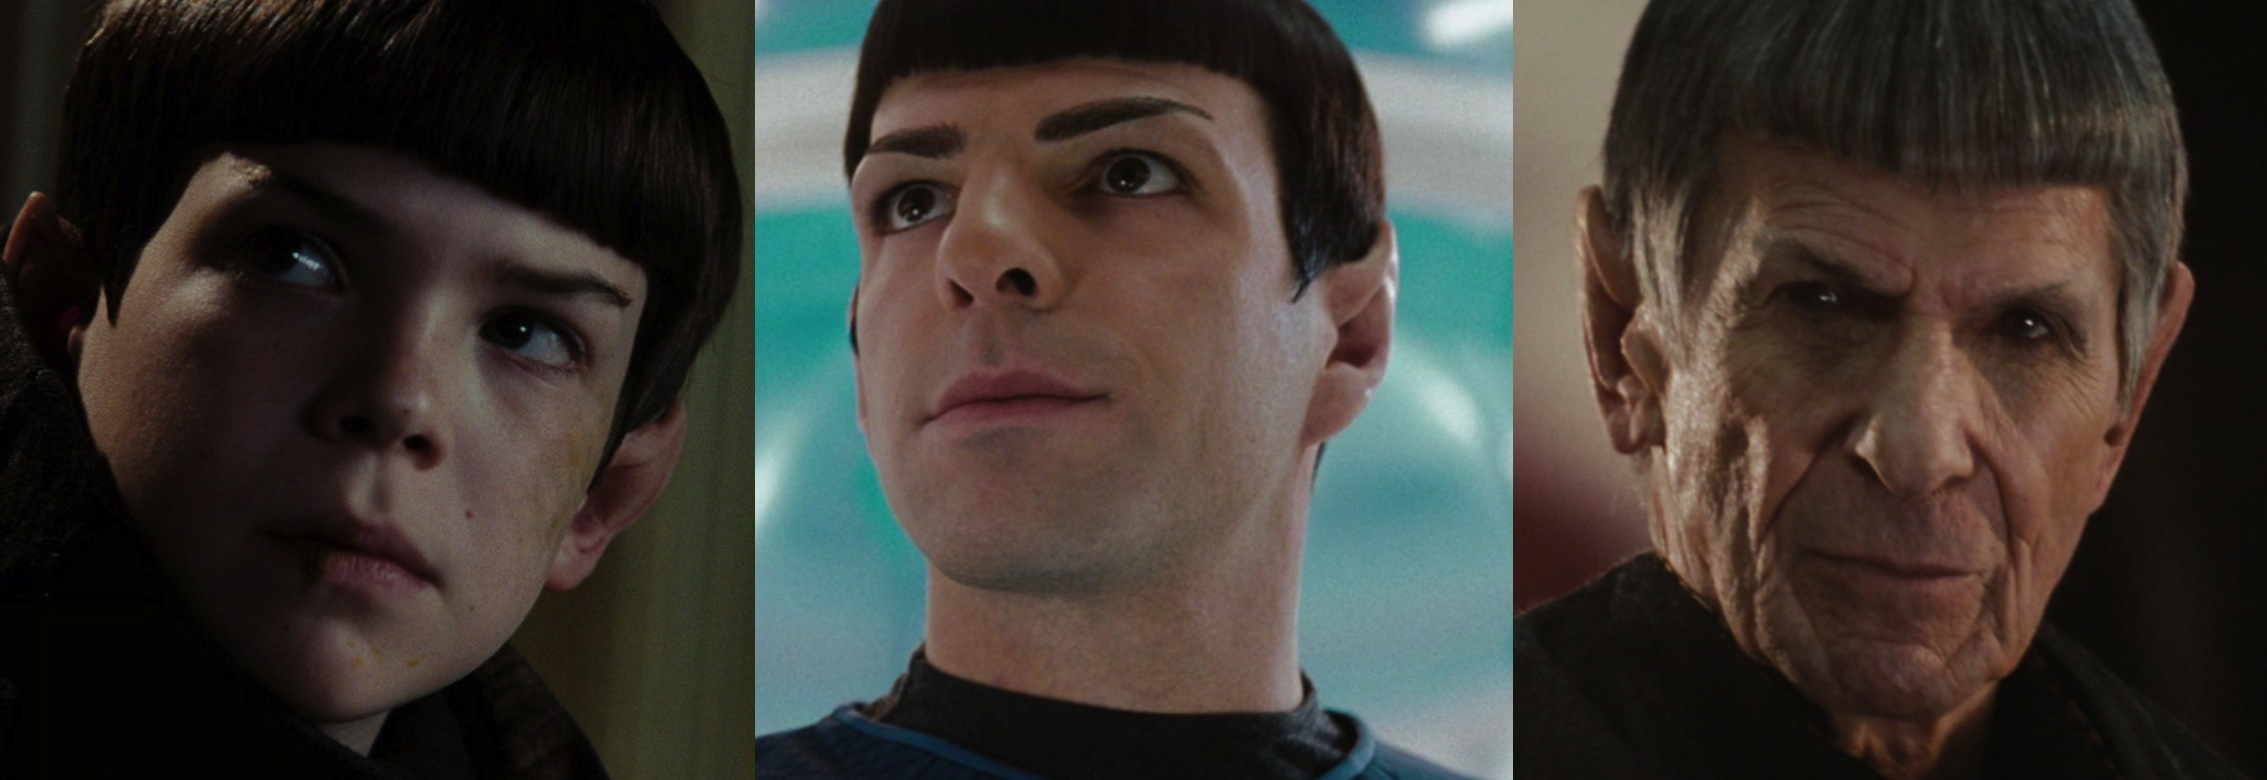 Spock-past-present-future.jpg